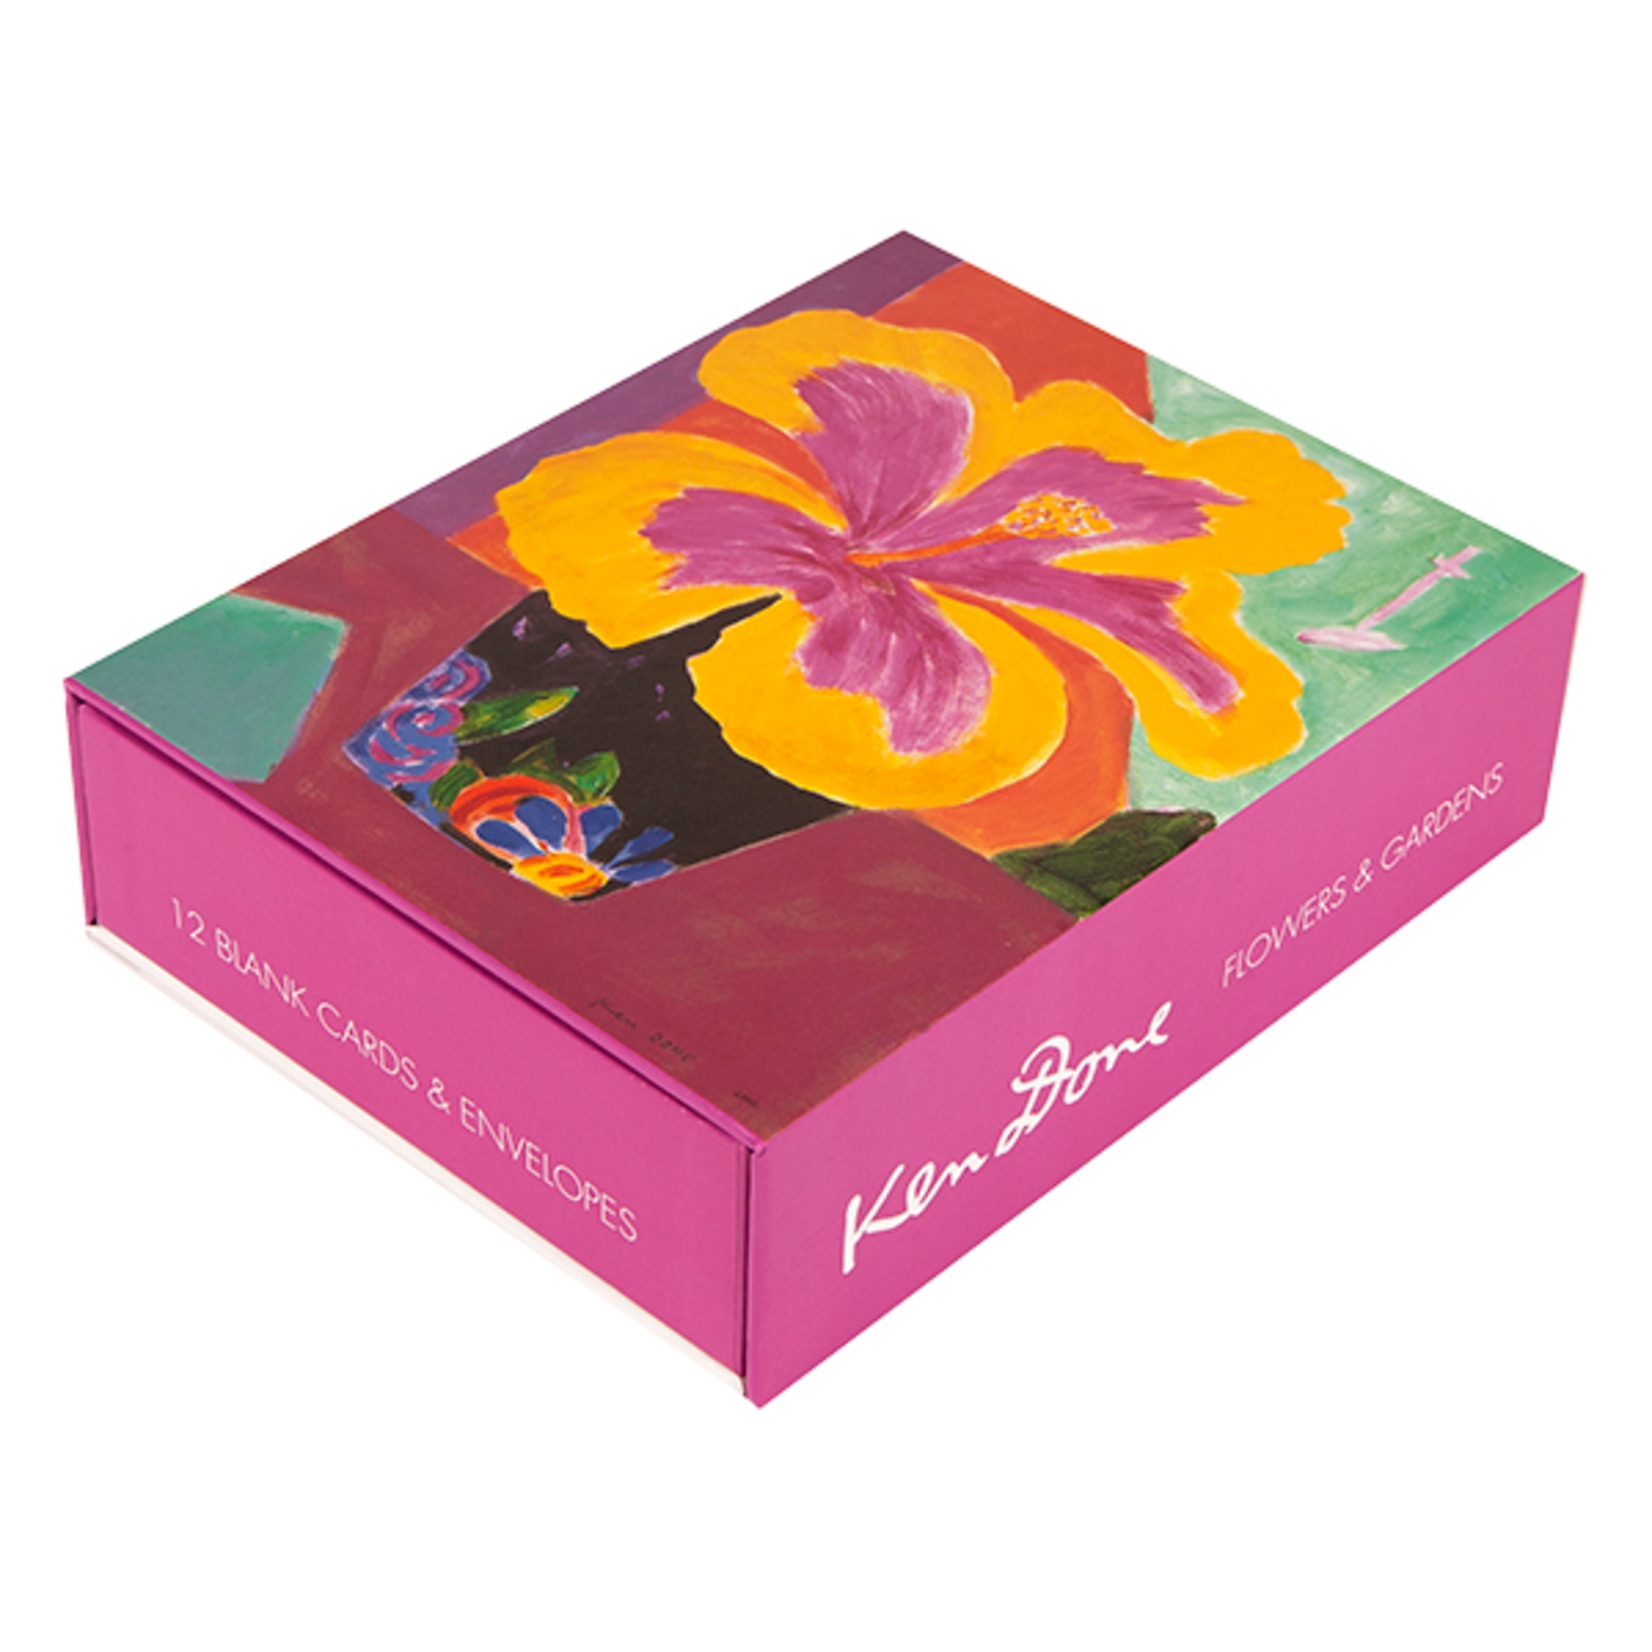 Books & Stationery Box of cards - Flowers and Gardens